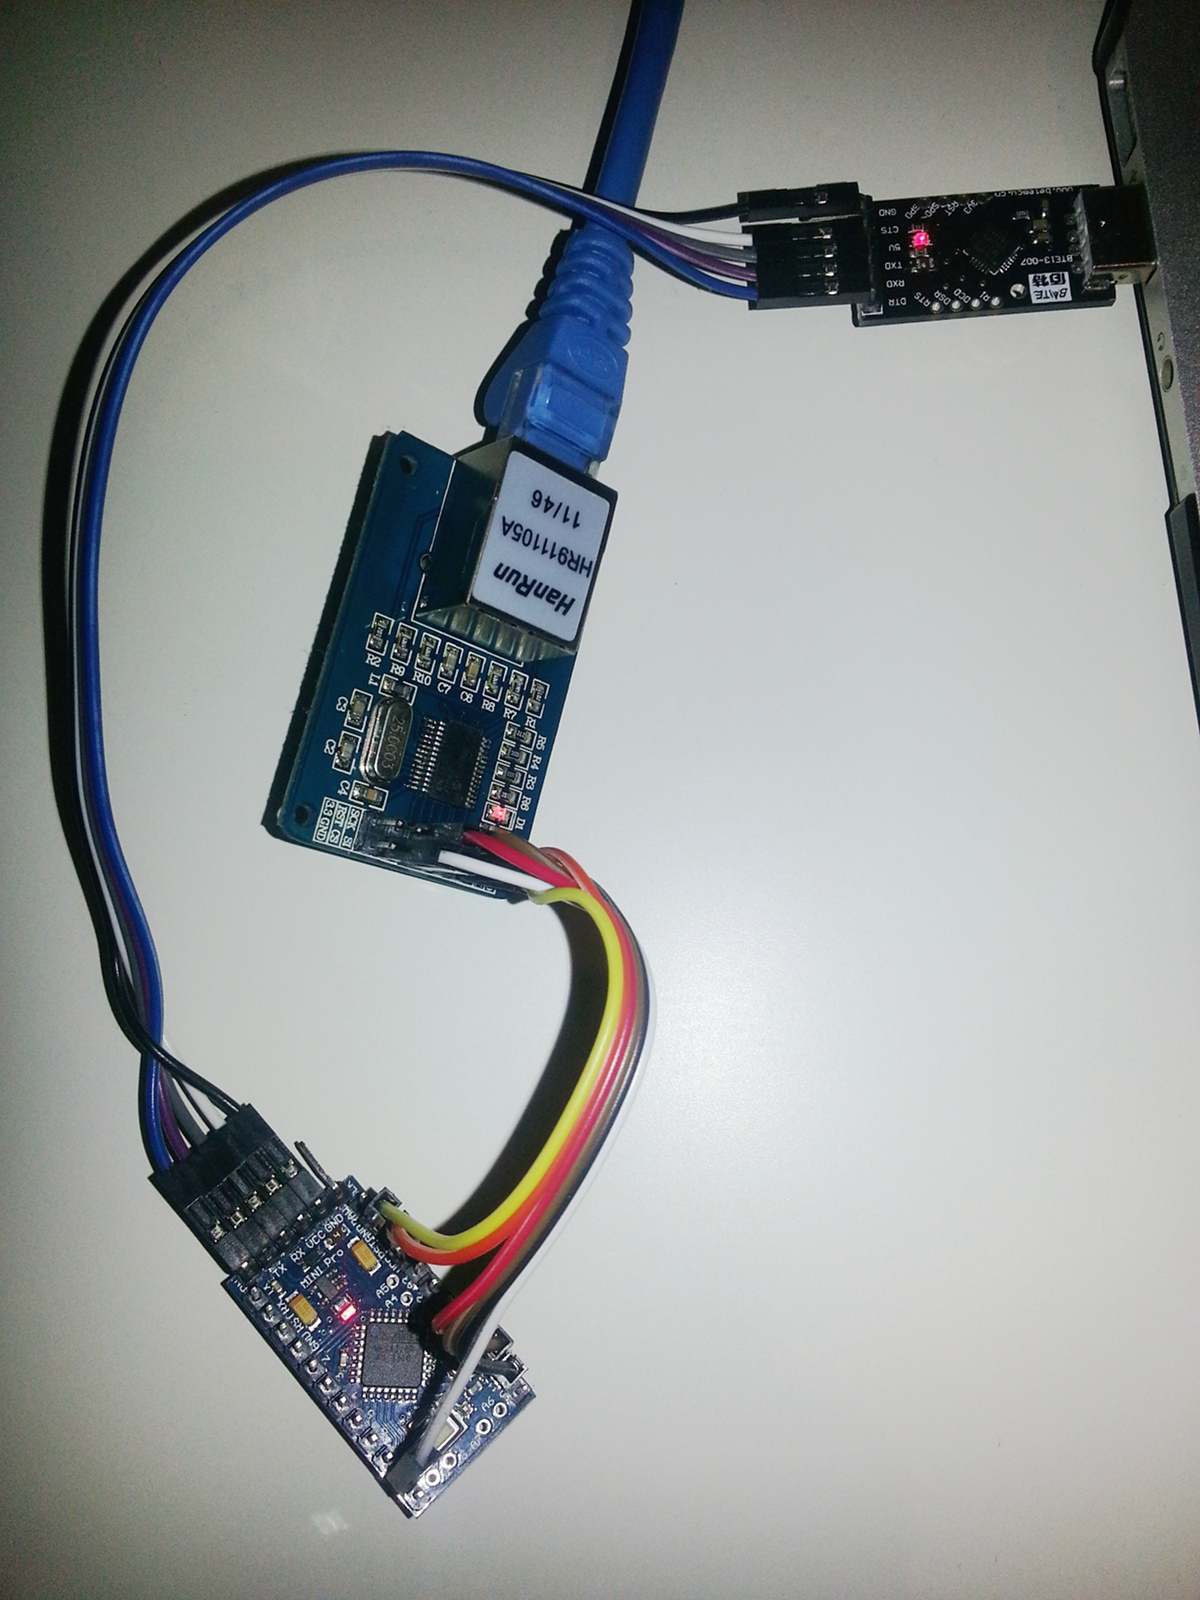 Arduino pro mini clone with ethernet connection enrico